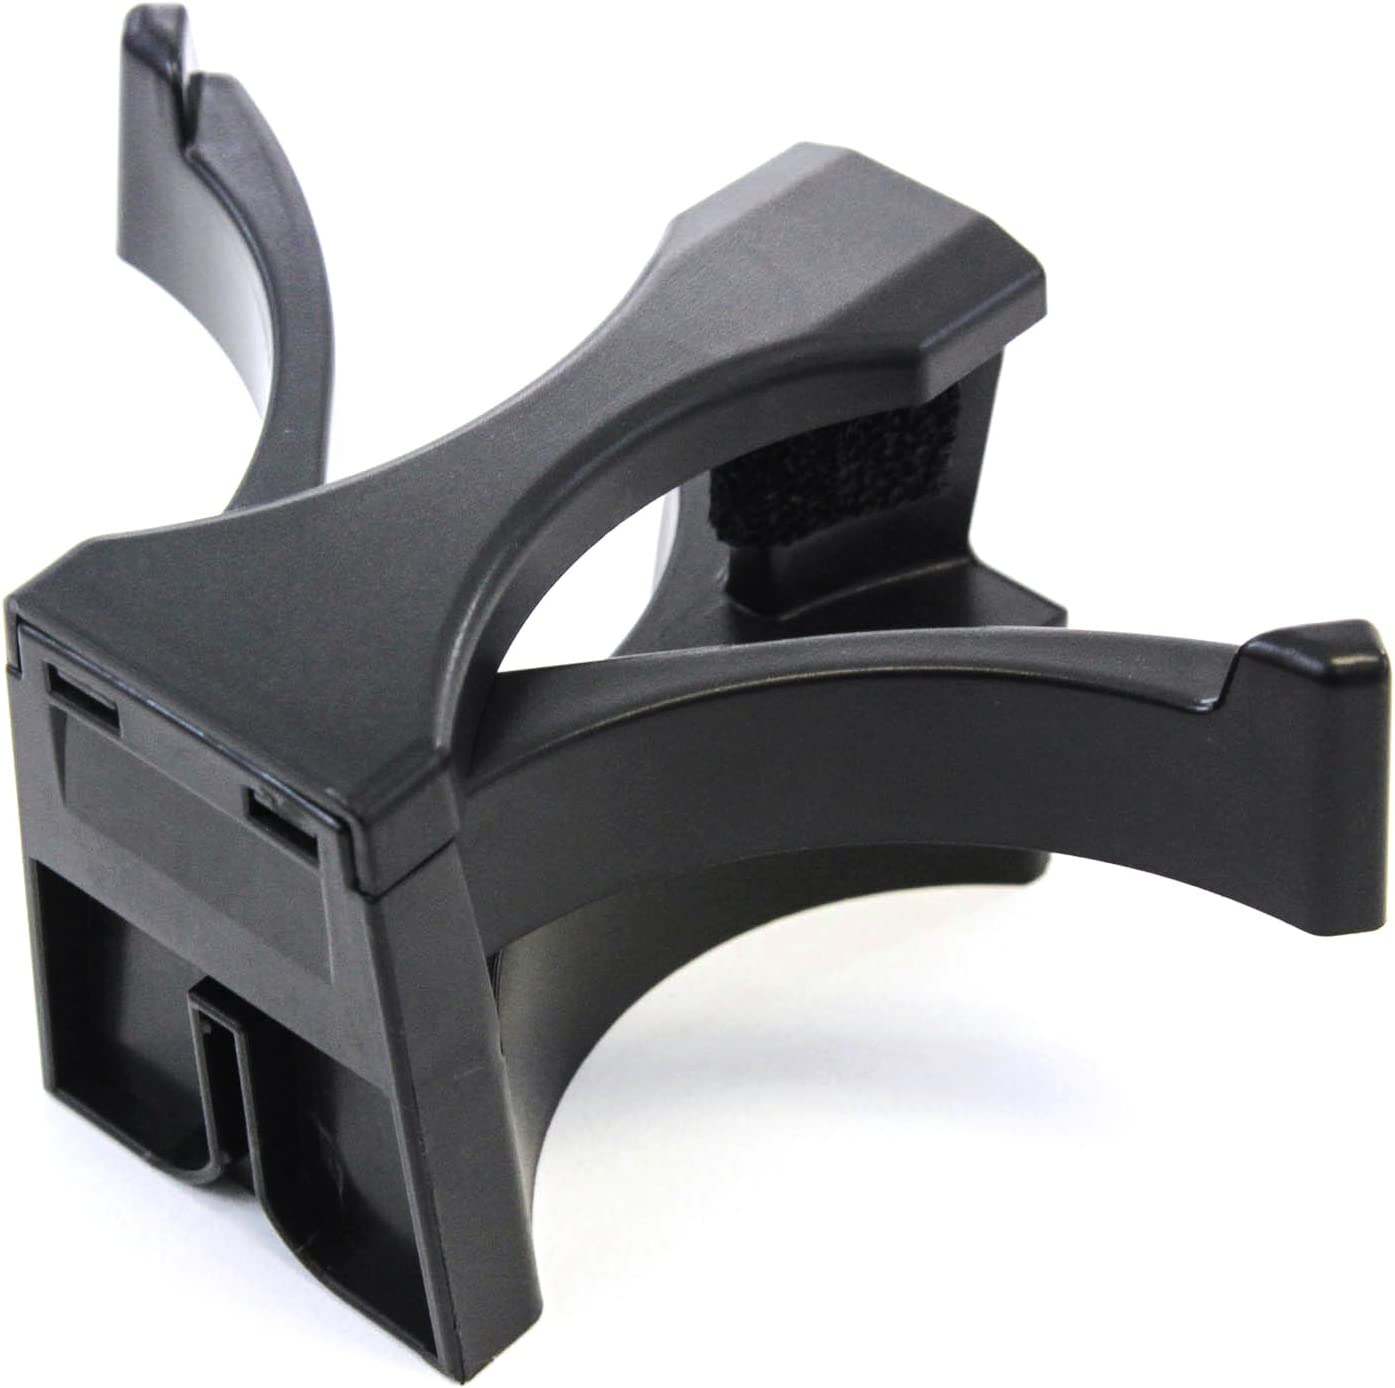 Cup Holder Insert for Toyota Tacoma Fits 2005 2006 2007 2008 2009 2010 Trunknets Inc for 55604-04010